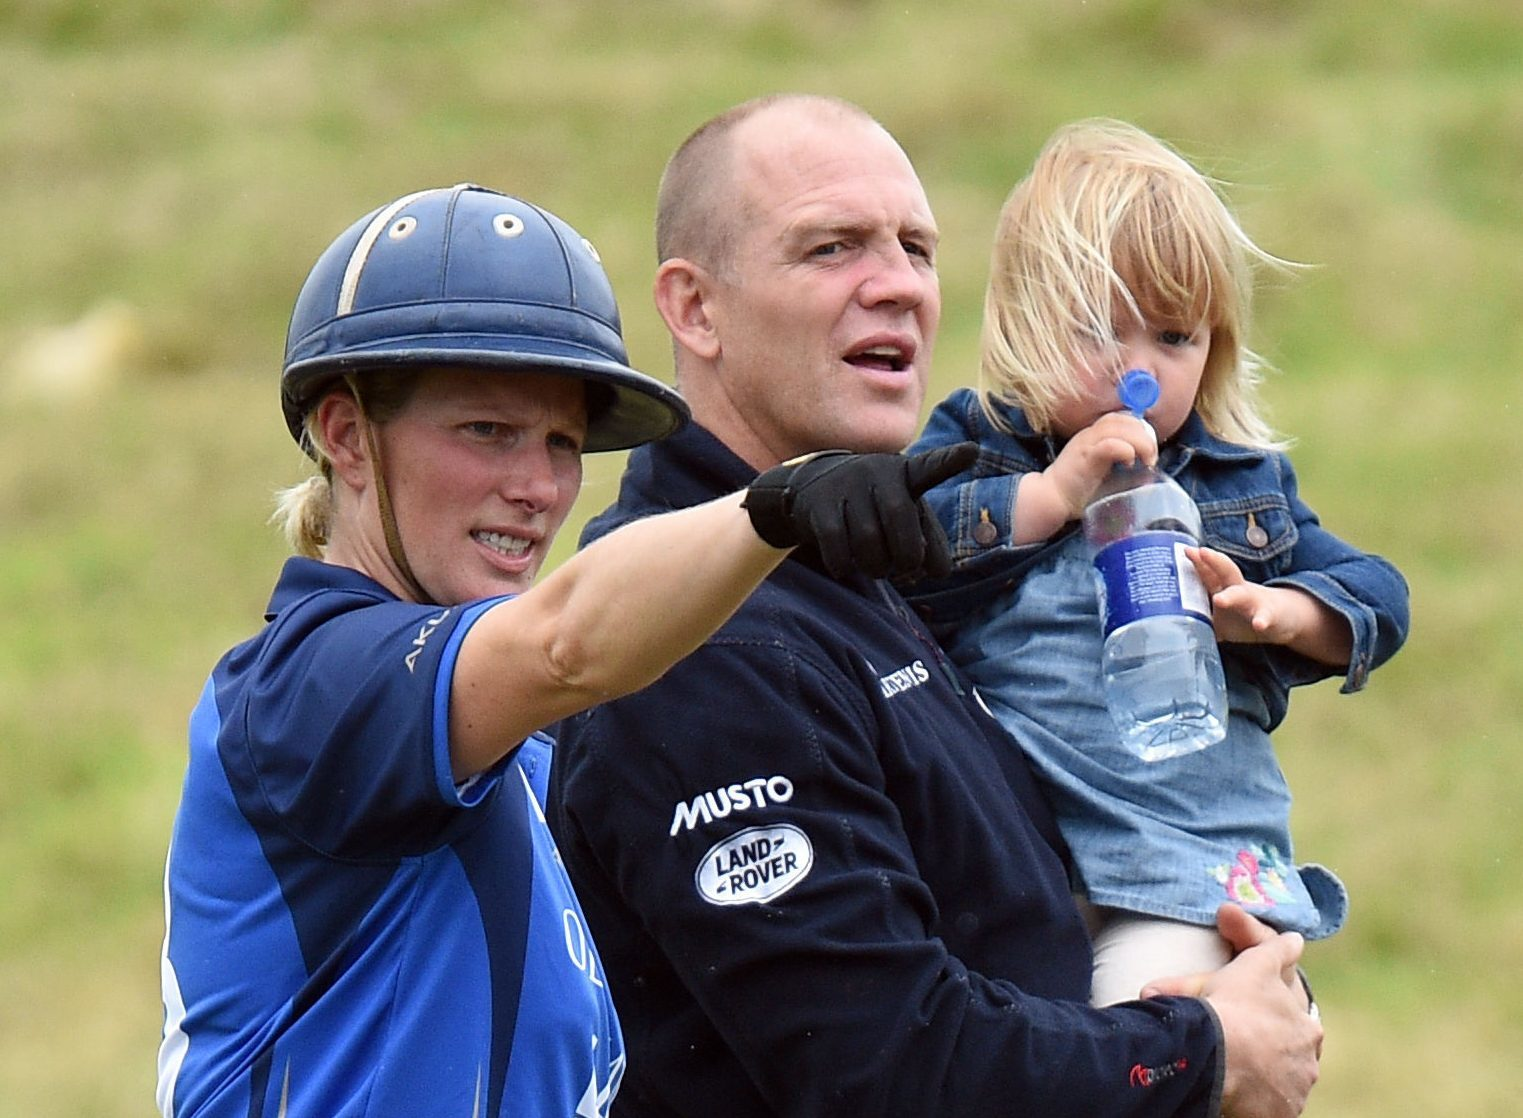 Zara and Mike Tindall with their daughter Mia Grace, as the couple are expecting their second child, a spokeswoman for the pair has said. (Andrew Matthews/PA Wire)